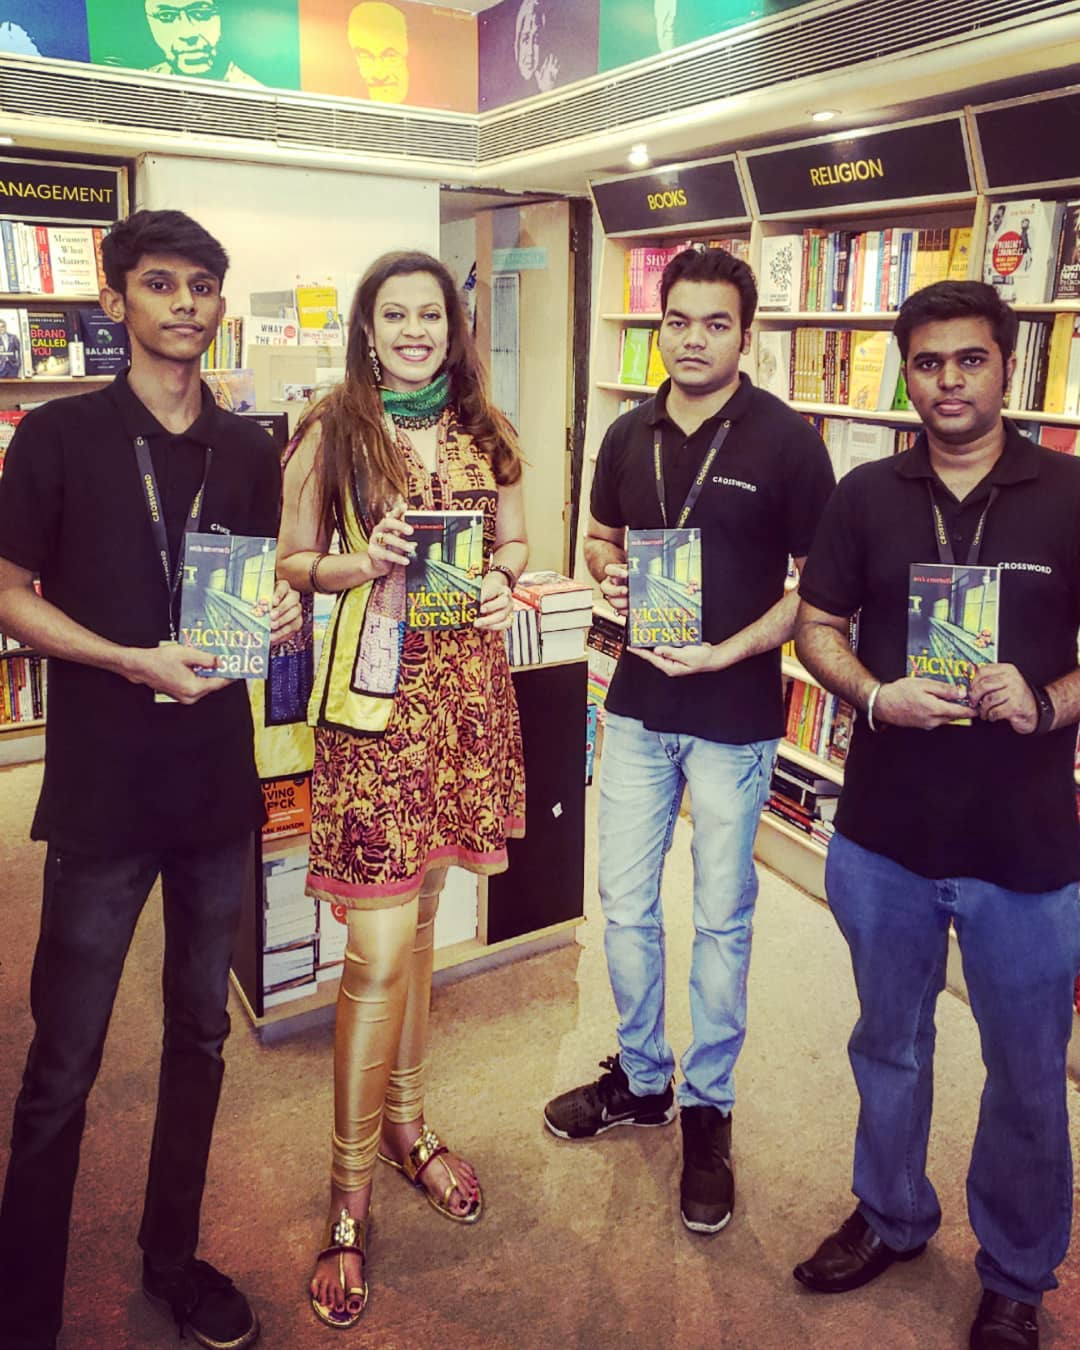 CROSSWORD BOOKSTORES. MUMBAI. JAN. 2019 - With the team at Crossword Bookstores' Turner Road outpost in Mumbai's Bandra West during an author appearance and book-signing, as part of a Bombay roadshow.KEYWORDS: Crossword Bookstores, Crossword Bookstores Mumbai, book signing, authors in Mumbai, Mumbai, Bombay, Bandra West Mumbai, bookstores, Nish Amarnath, Nischinta Amarnath, Victims For Sale